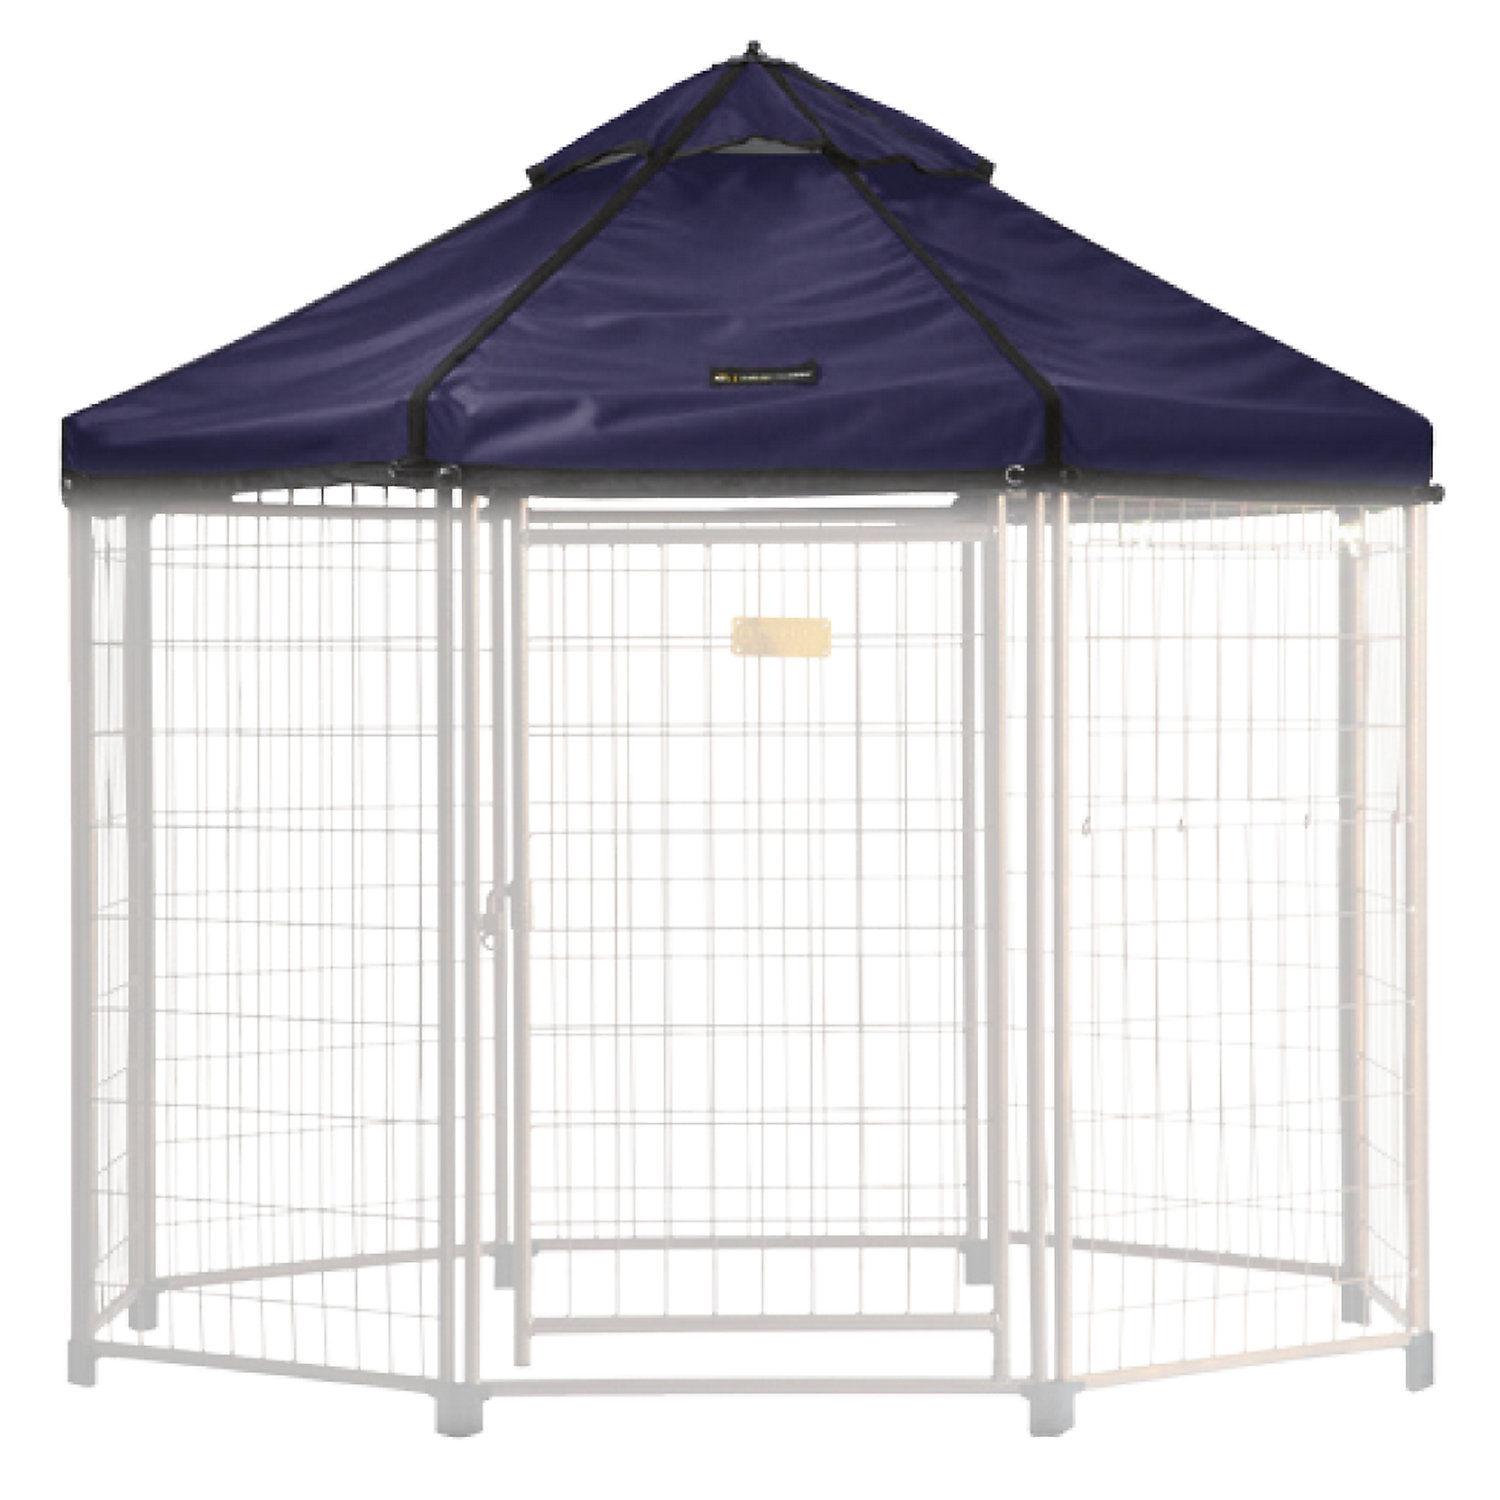 Advantek Select Pet Gazebo Lifestyle Cover Blue